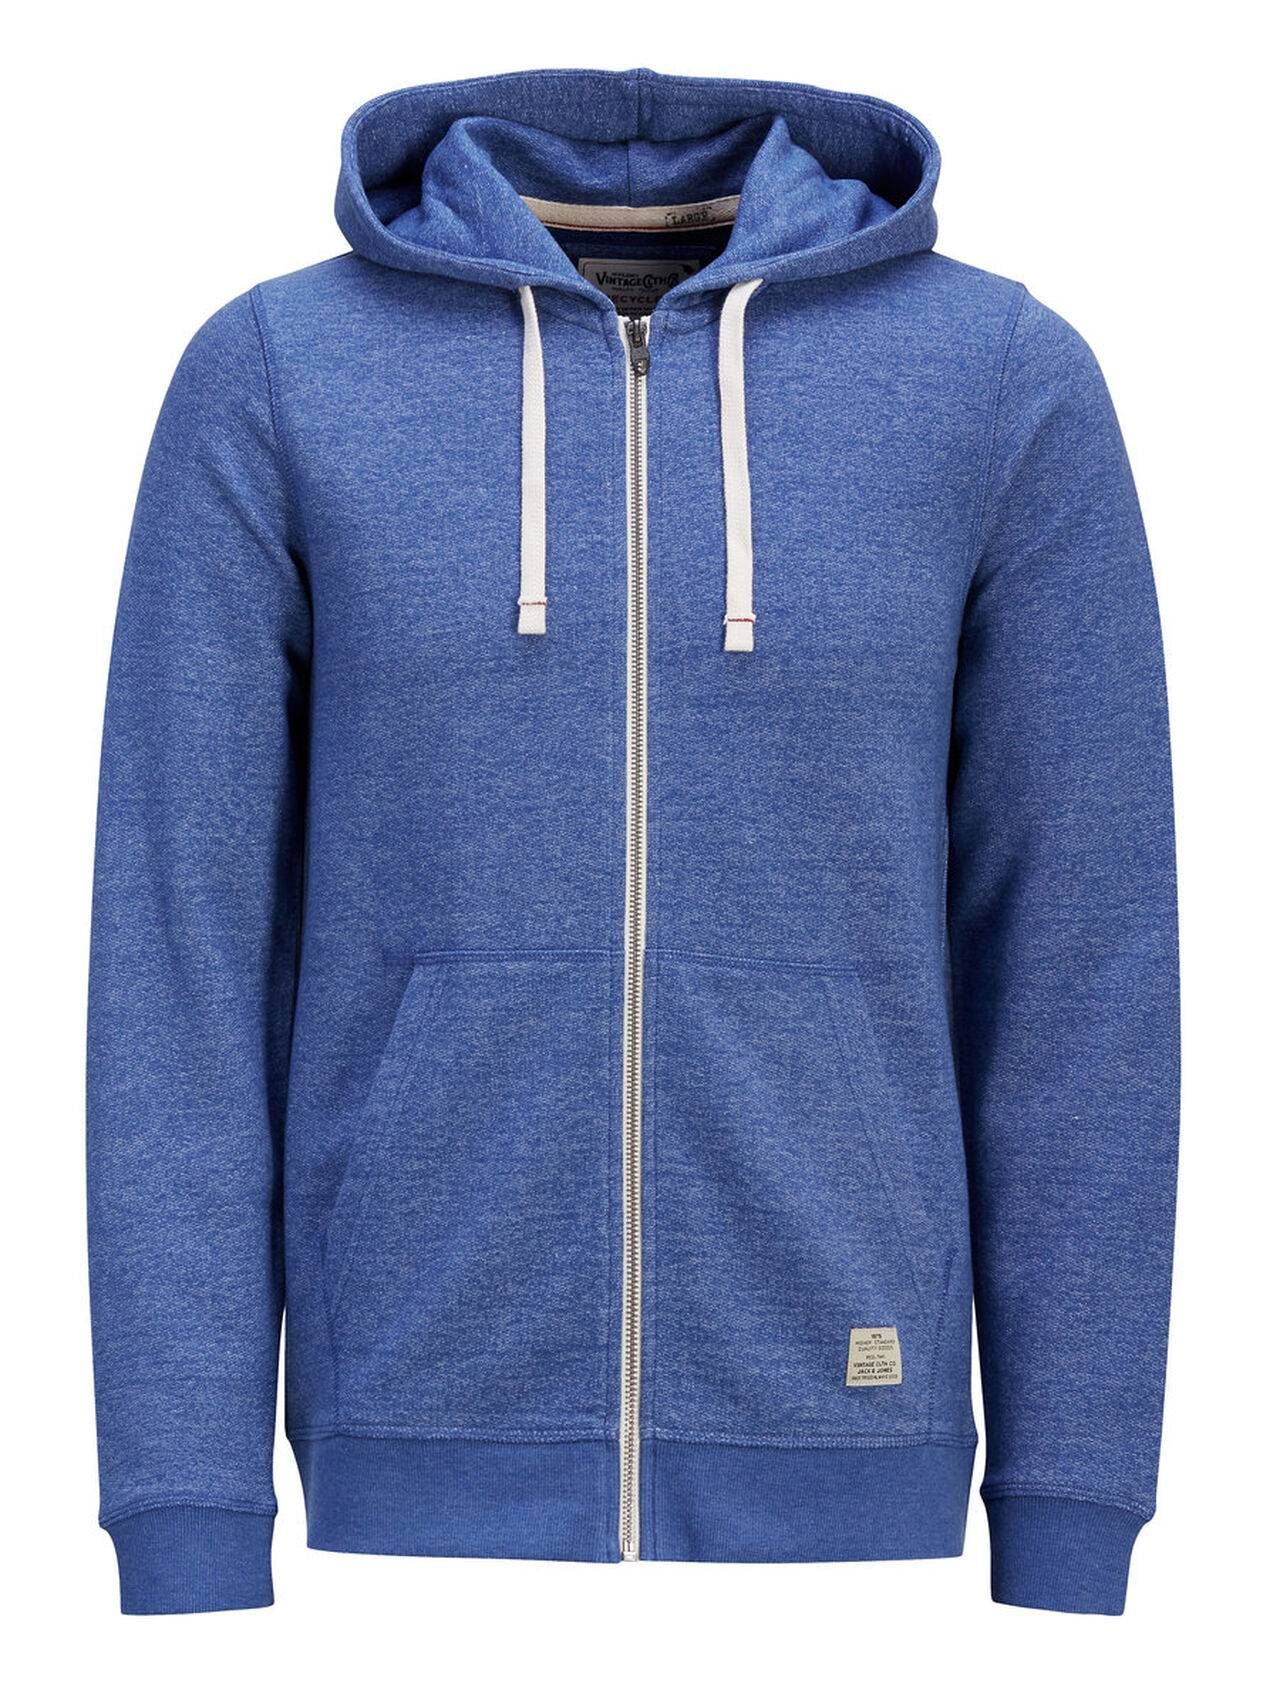 Jack & Jones Hooded Zip Through Sweatshirt MonacoBlue